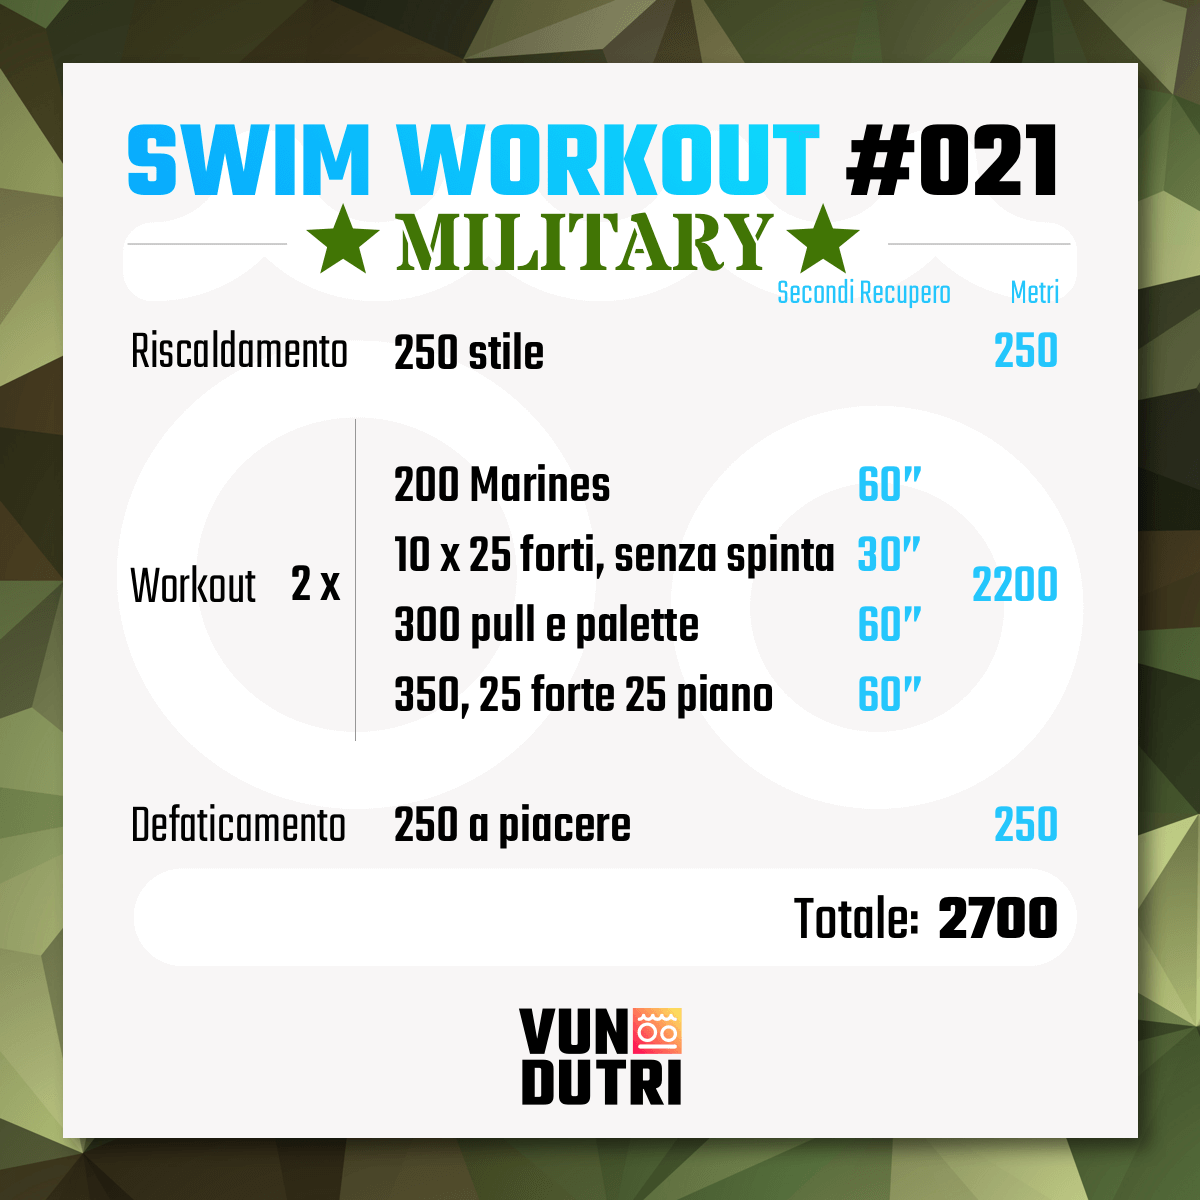 Swim workout 021